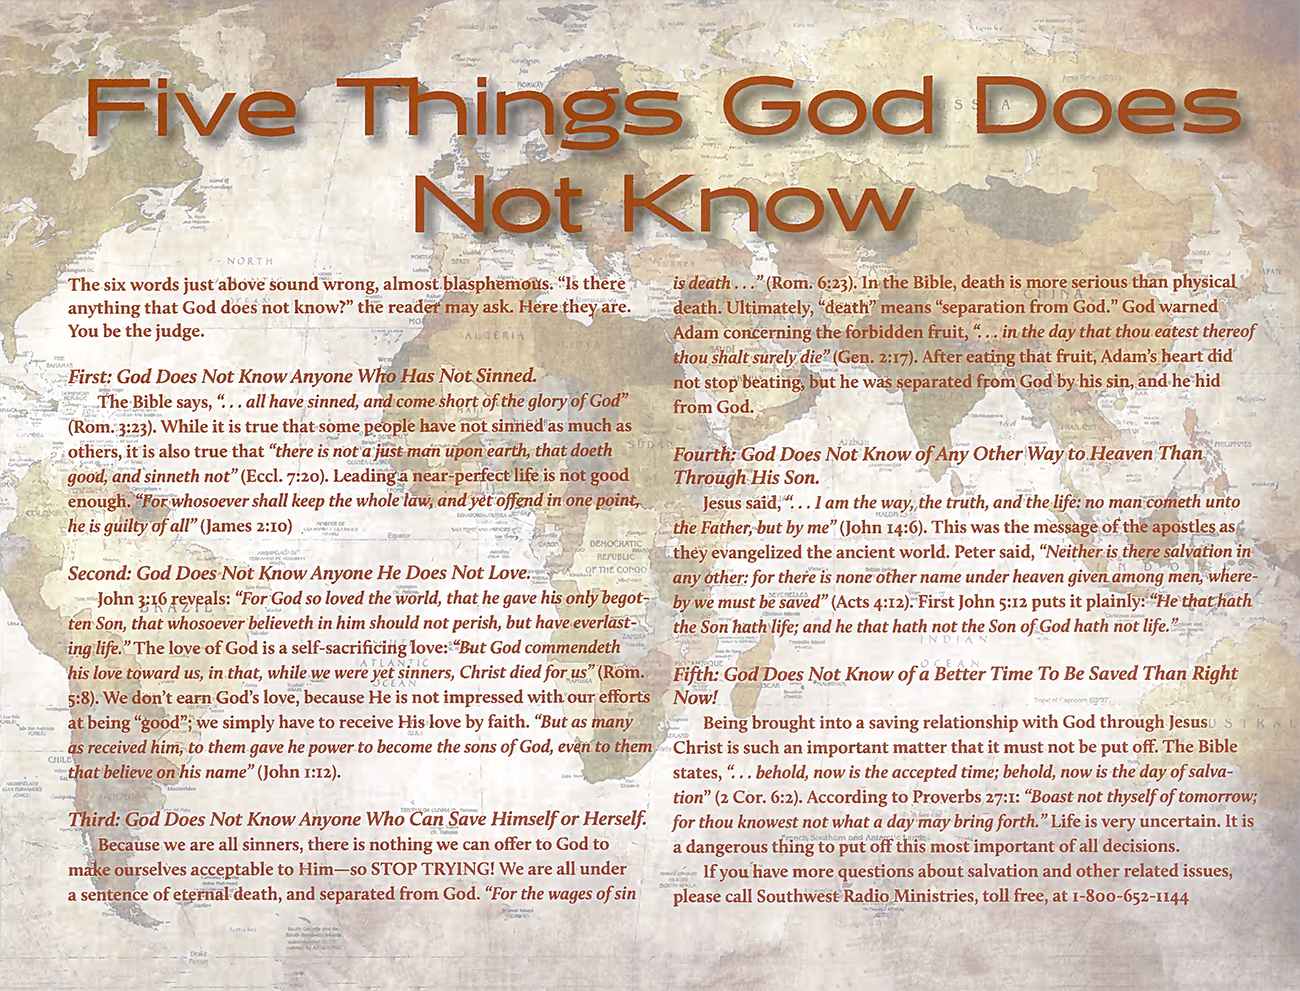 2015 Prophecy Calendar: Five Things God Does Not Know